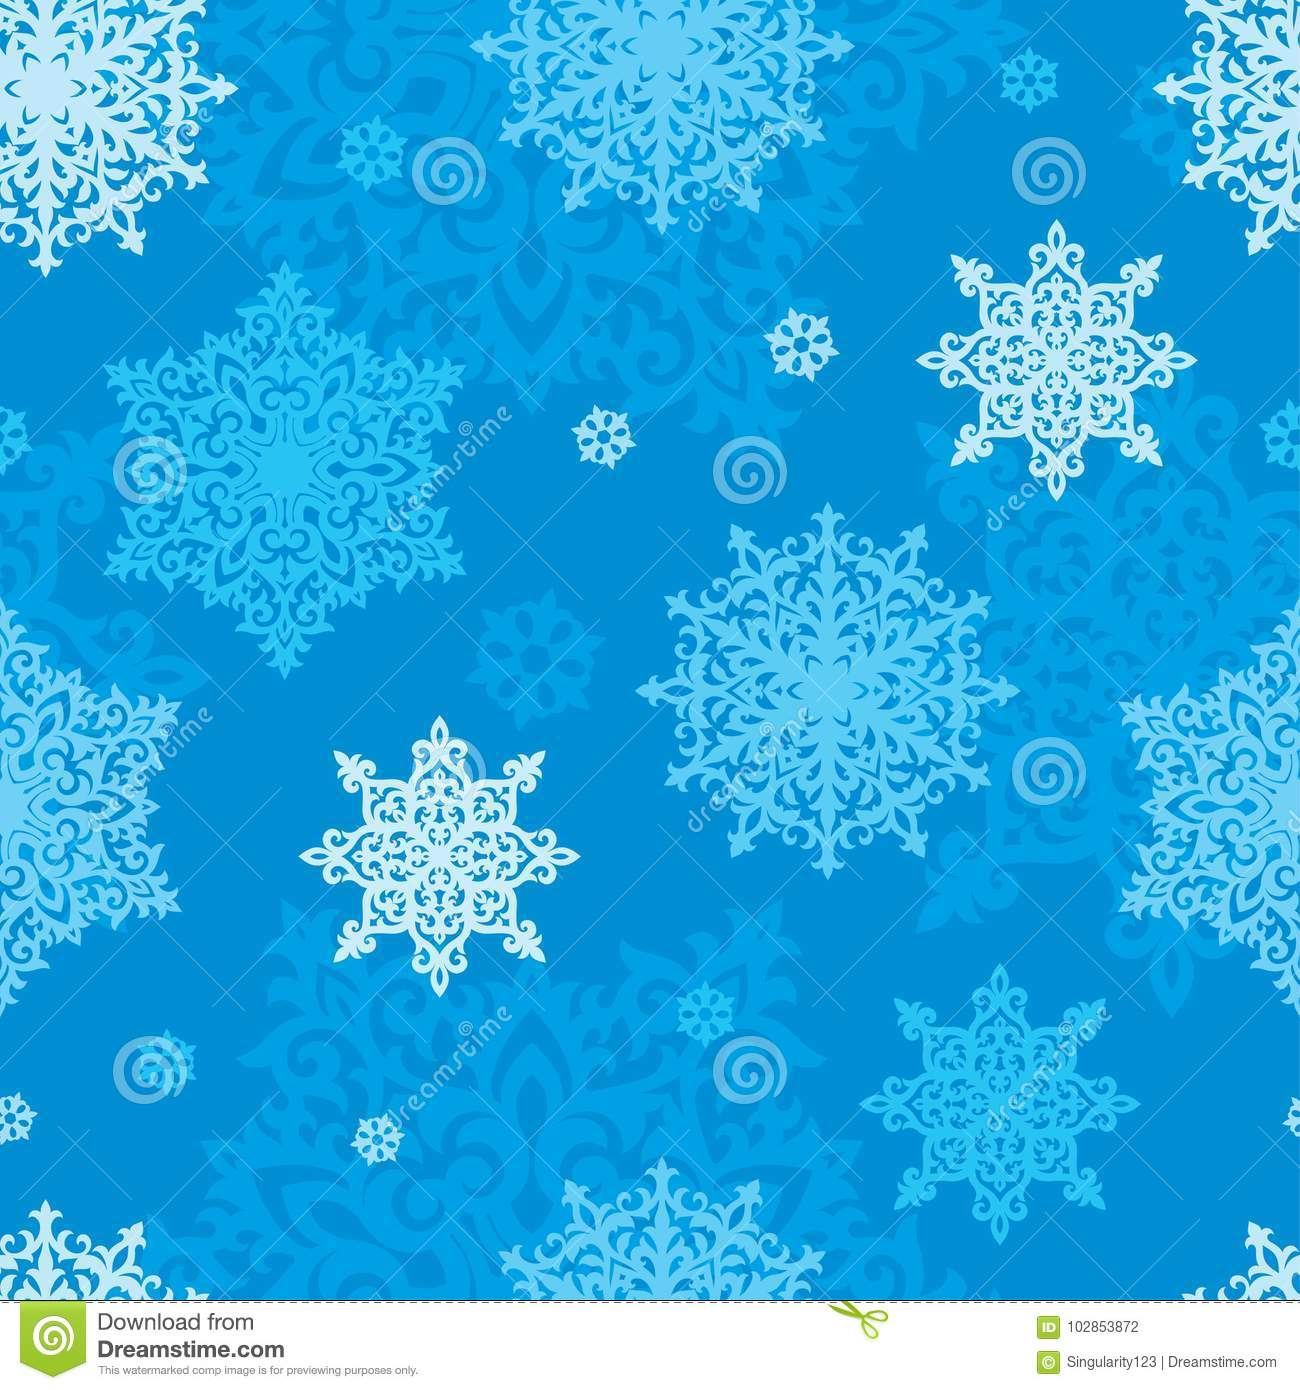 vector seamless pattern of snowflakes new year or christmas background for greeting card gift box wrapping decoration